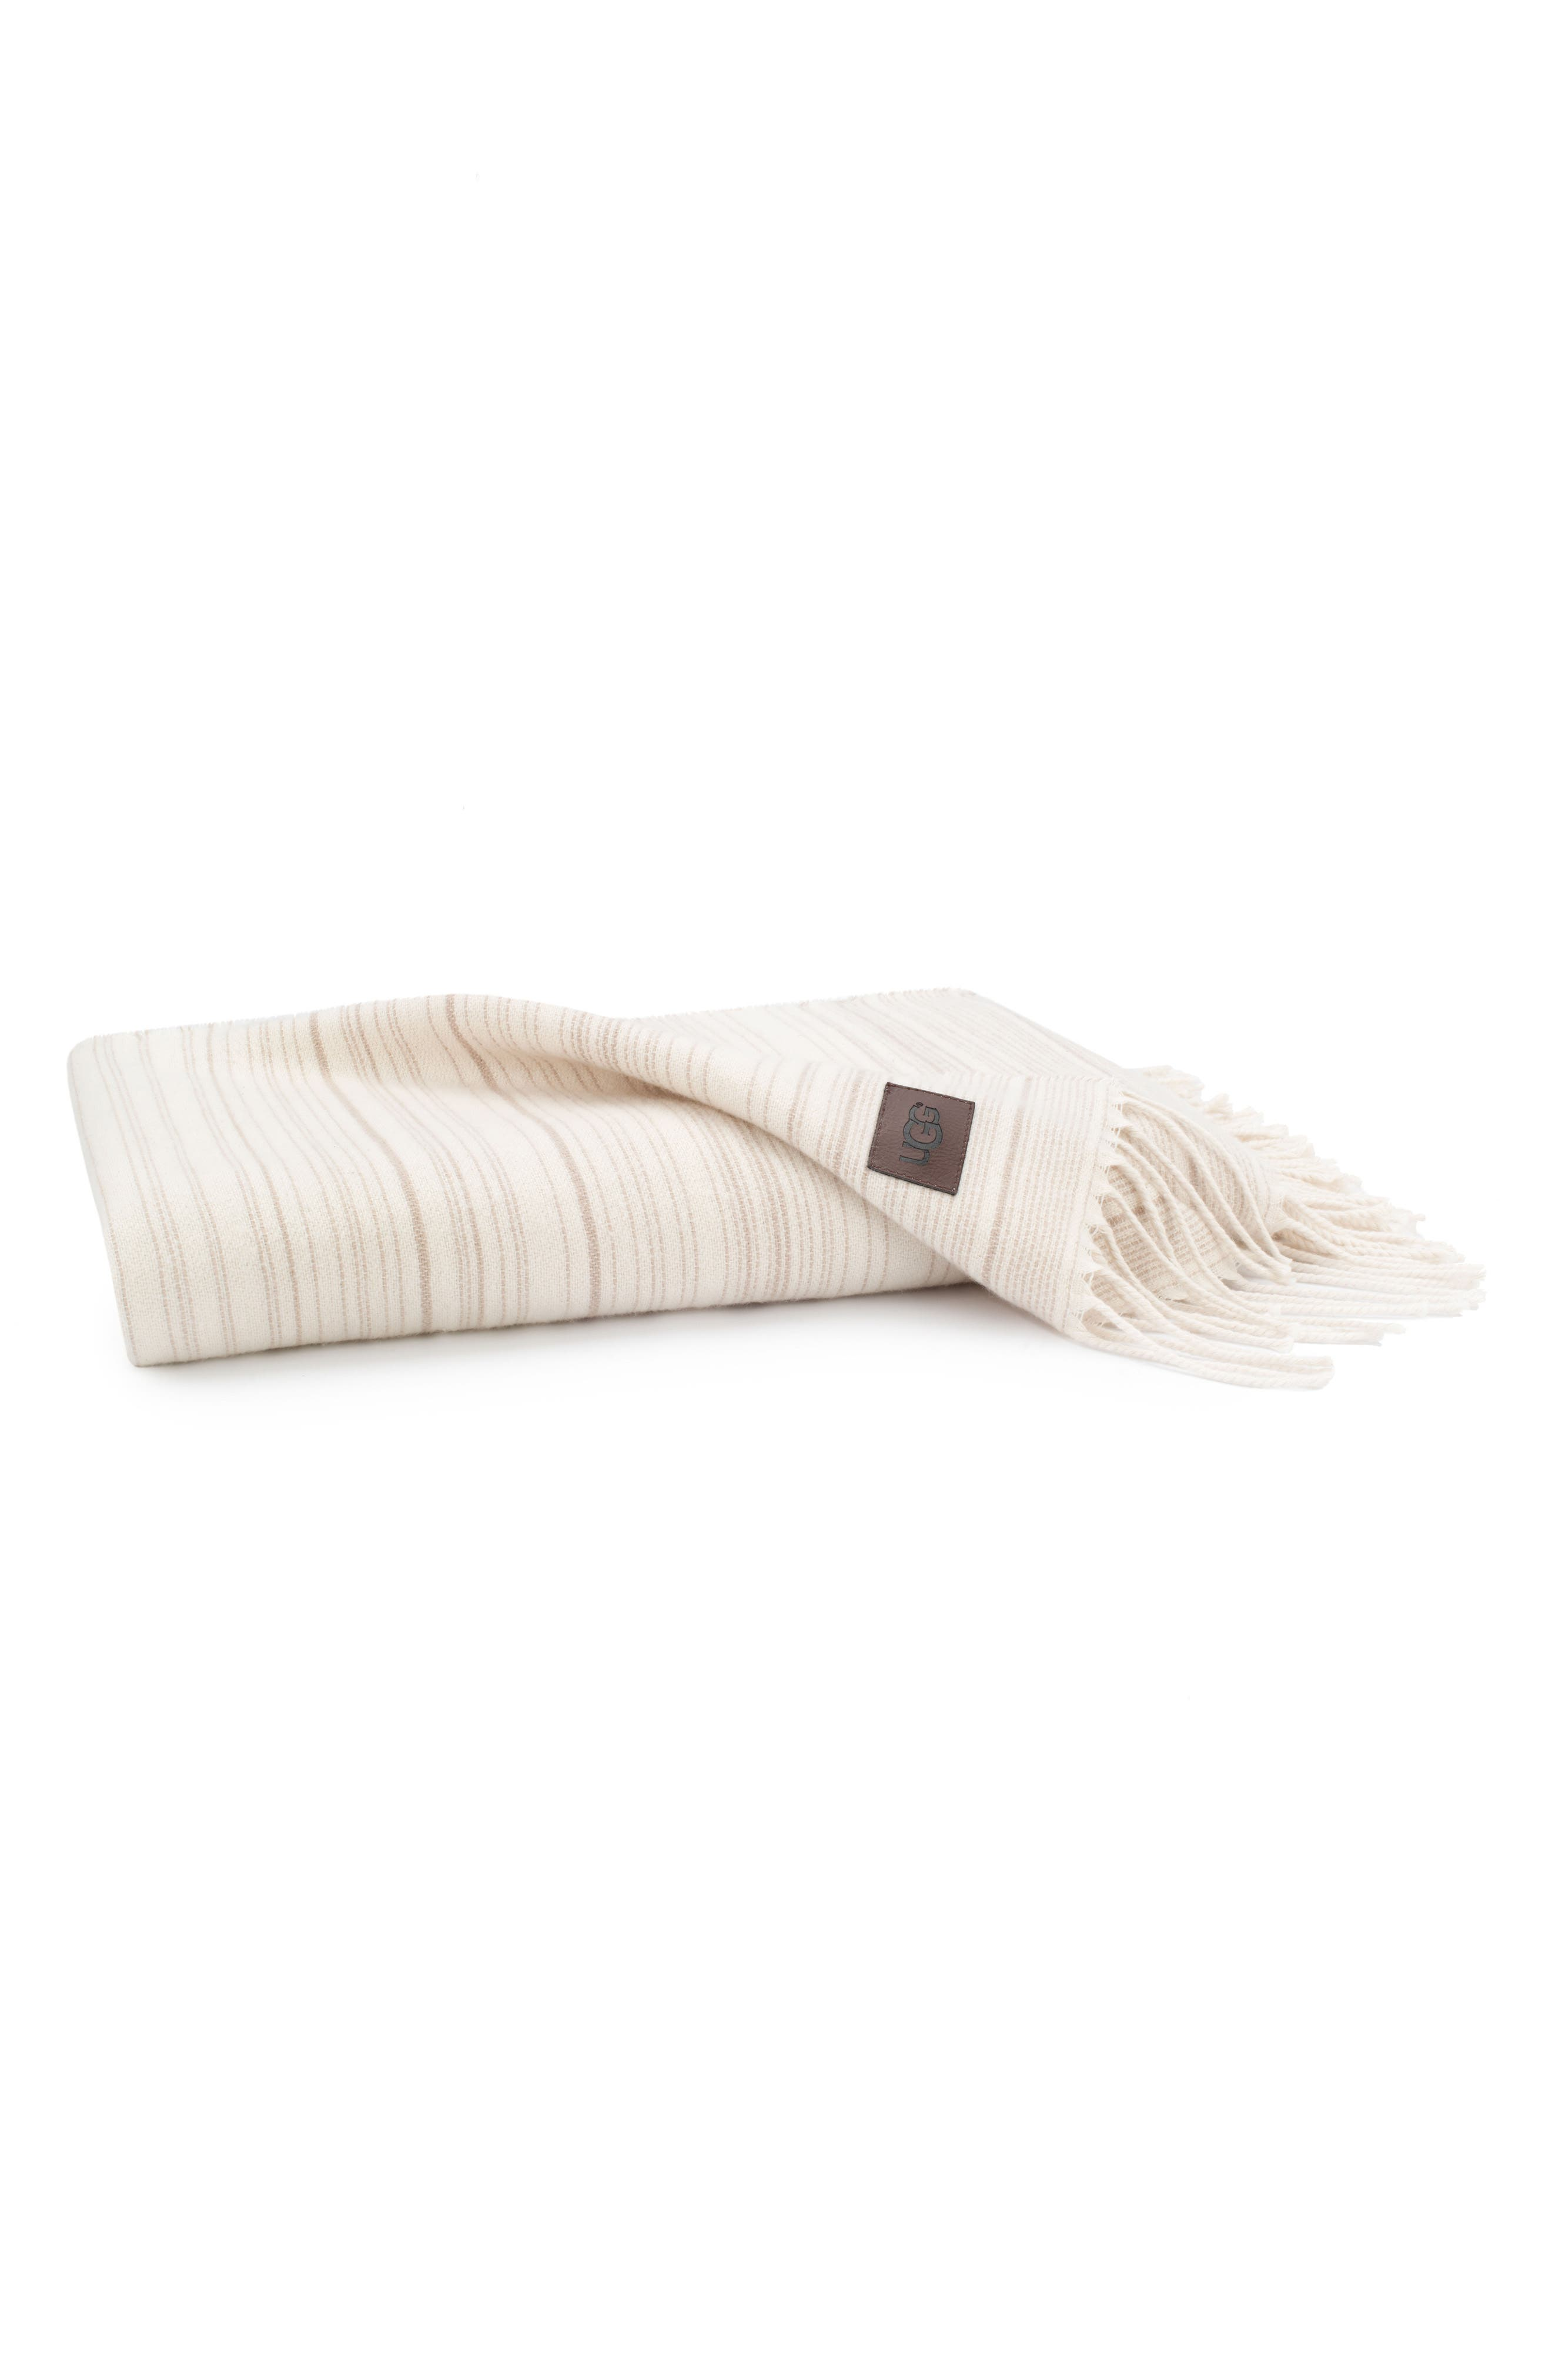 Driftwood Stripe Throw,                         Main,                         color, 100